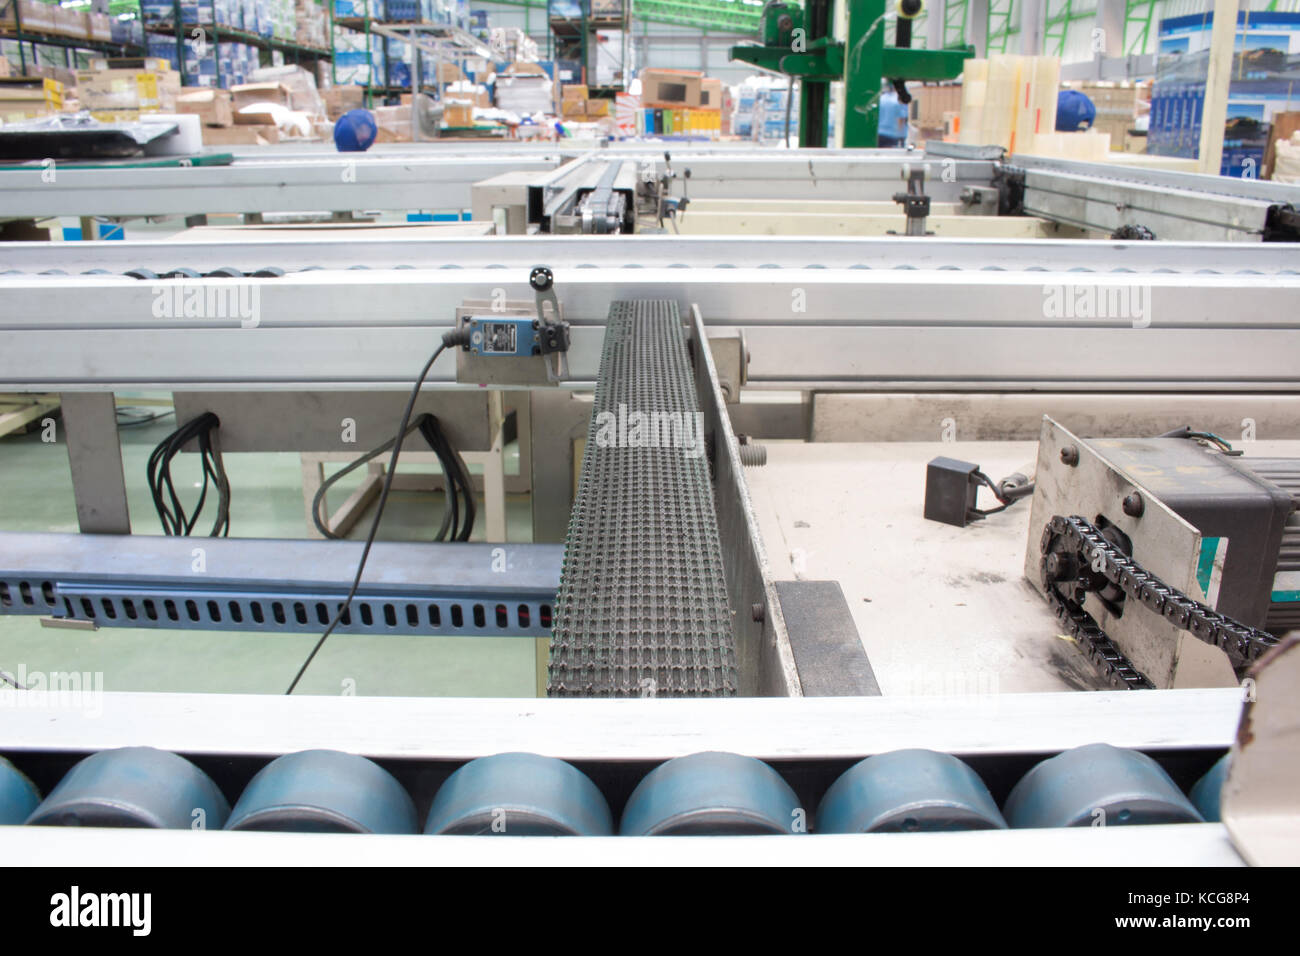 Conveyor belts in the production line of the factory. - Stock Image